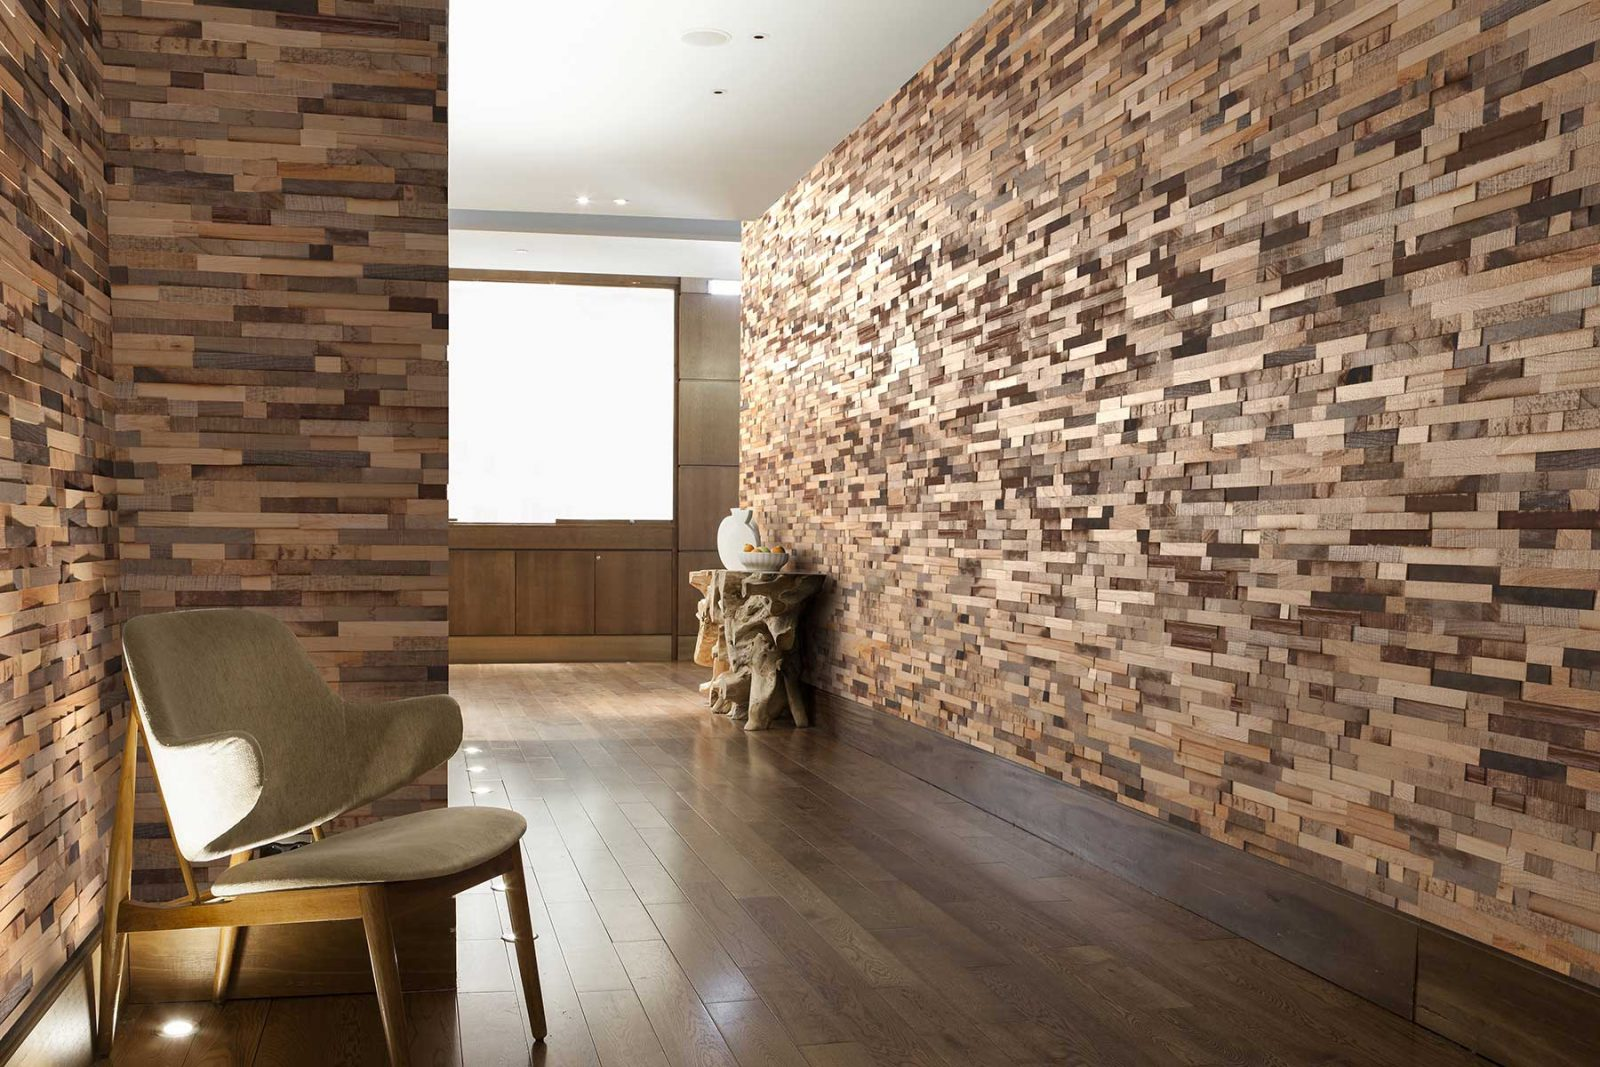 What are the benefits of choosing wall cladding for your home?